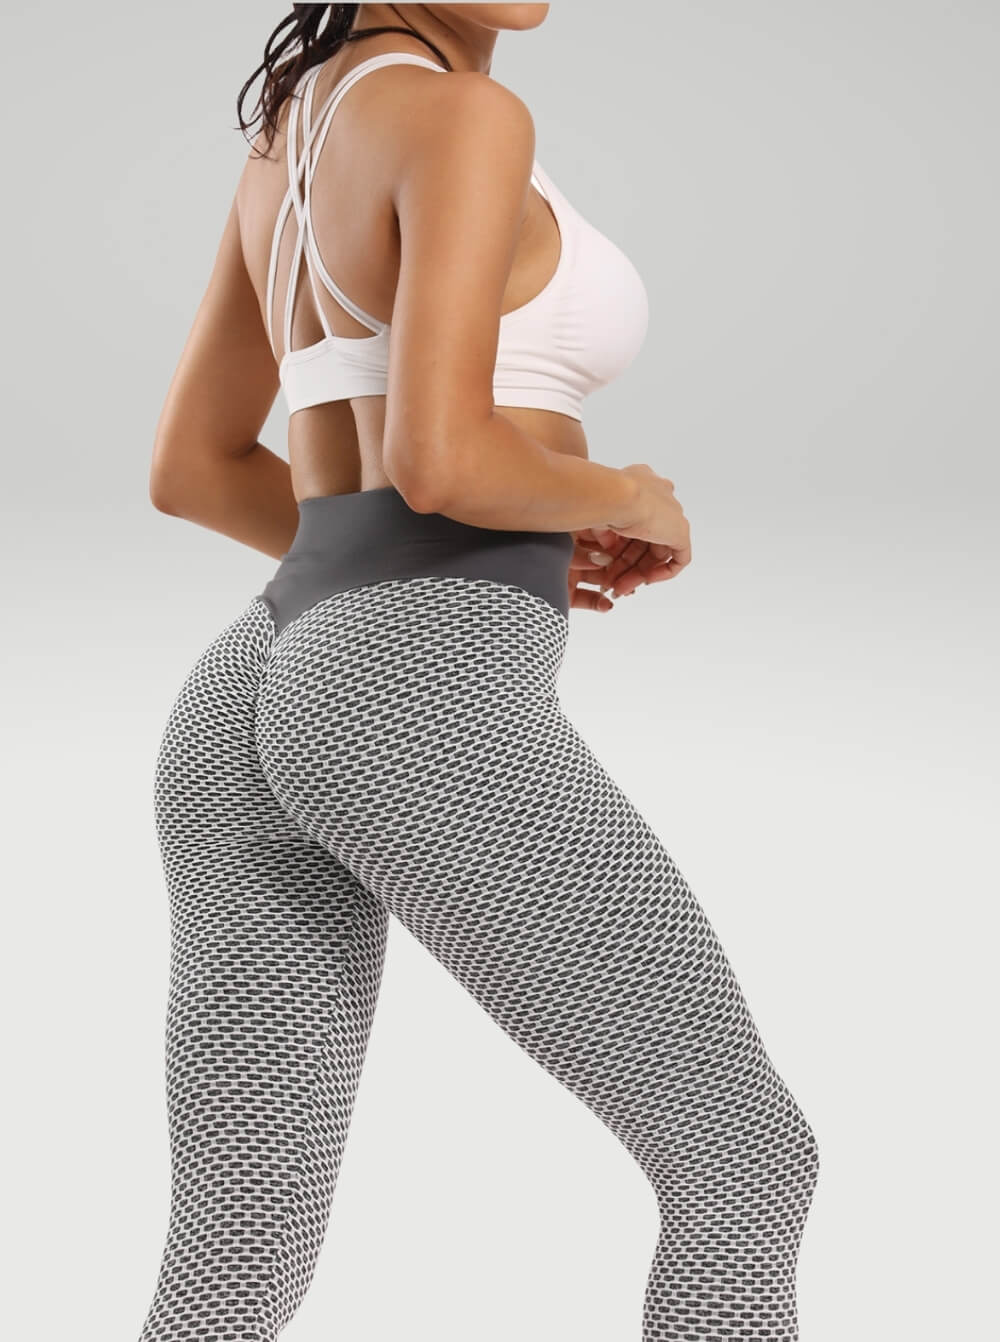 v2 Era Textured Lift Leggings